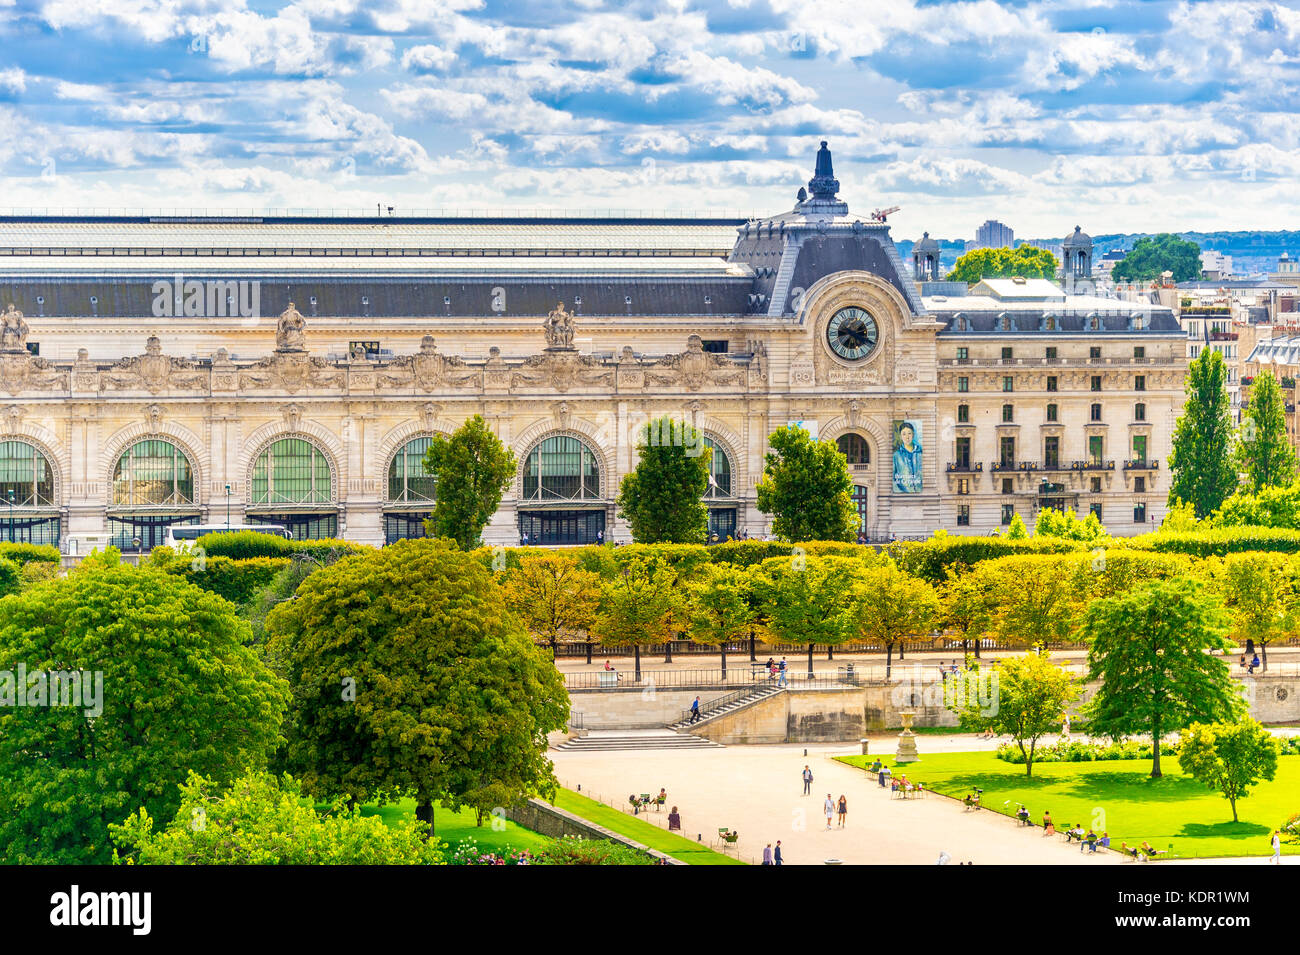 View of the Musee D'Orsay from the Tuileries Garden in Paris, France - Stock Image